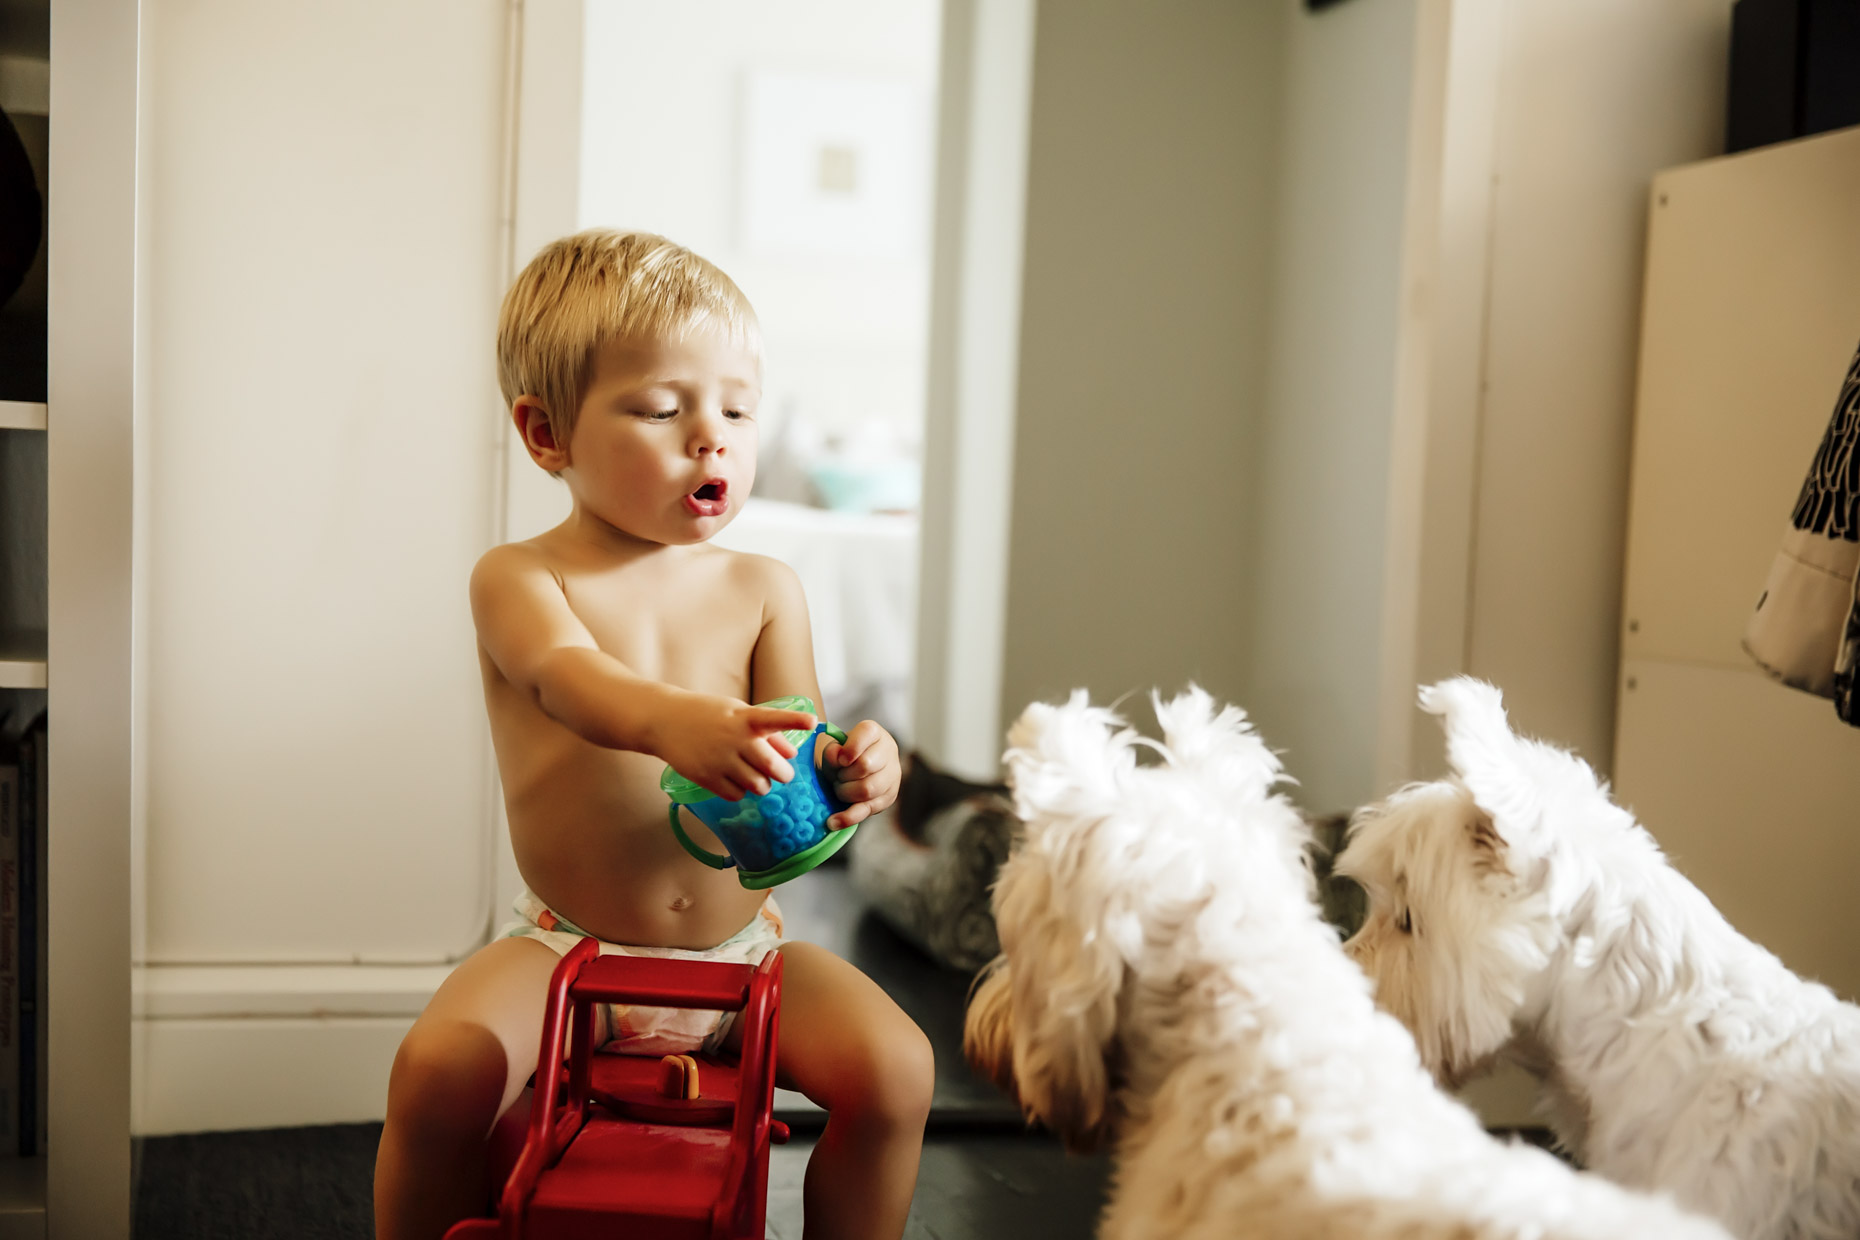 Baby-in-diaper-with-snacks-talking-to-westie-dogs-Inti-St-Clair-Lifestyle-is201506070234